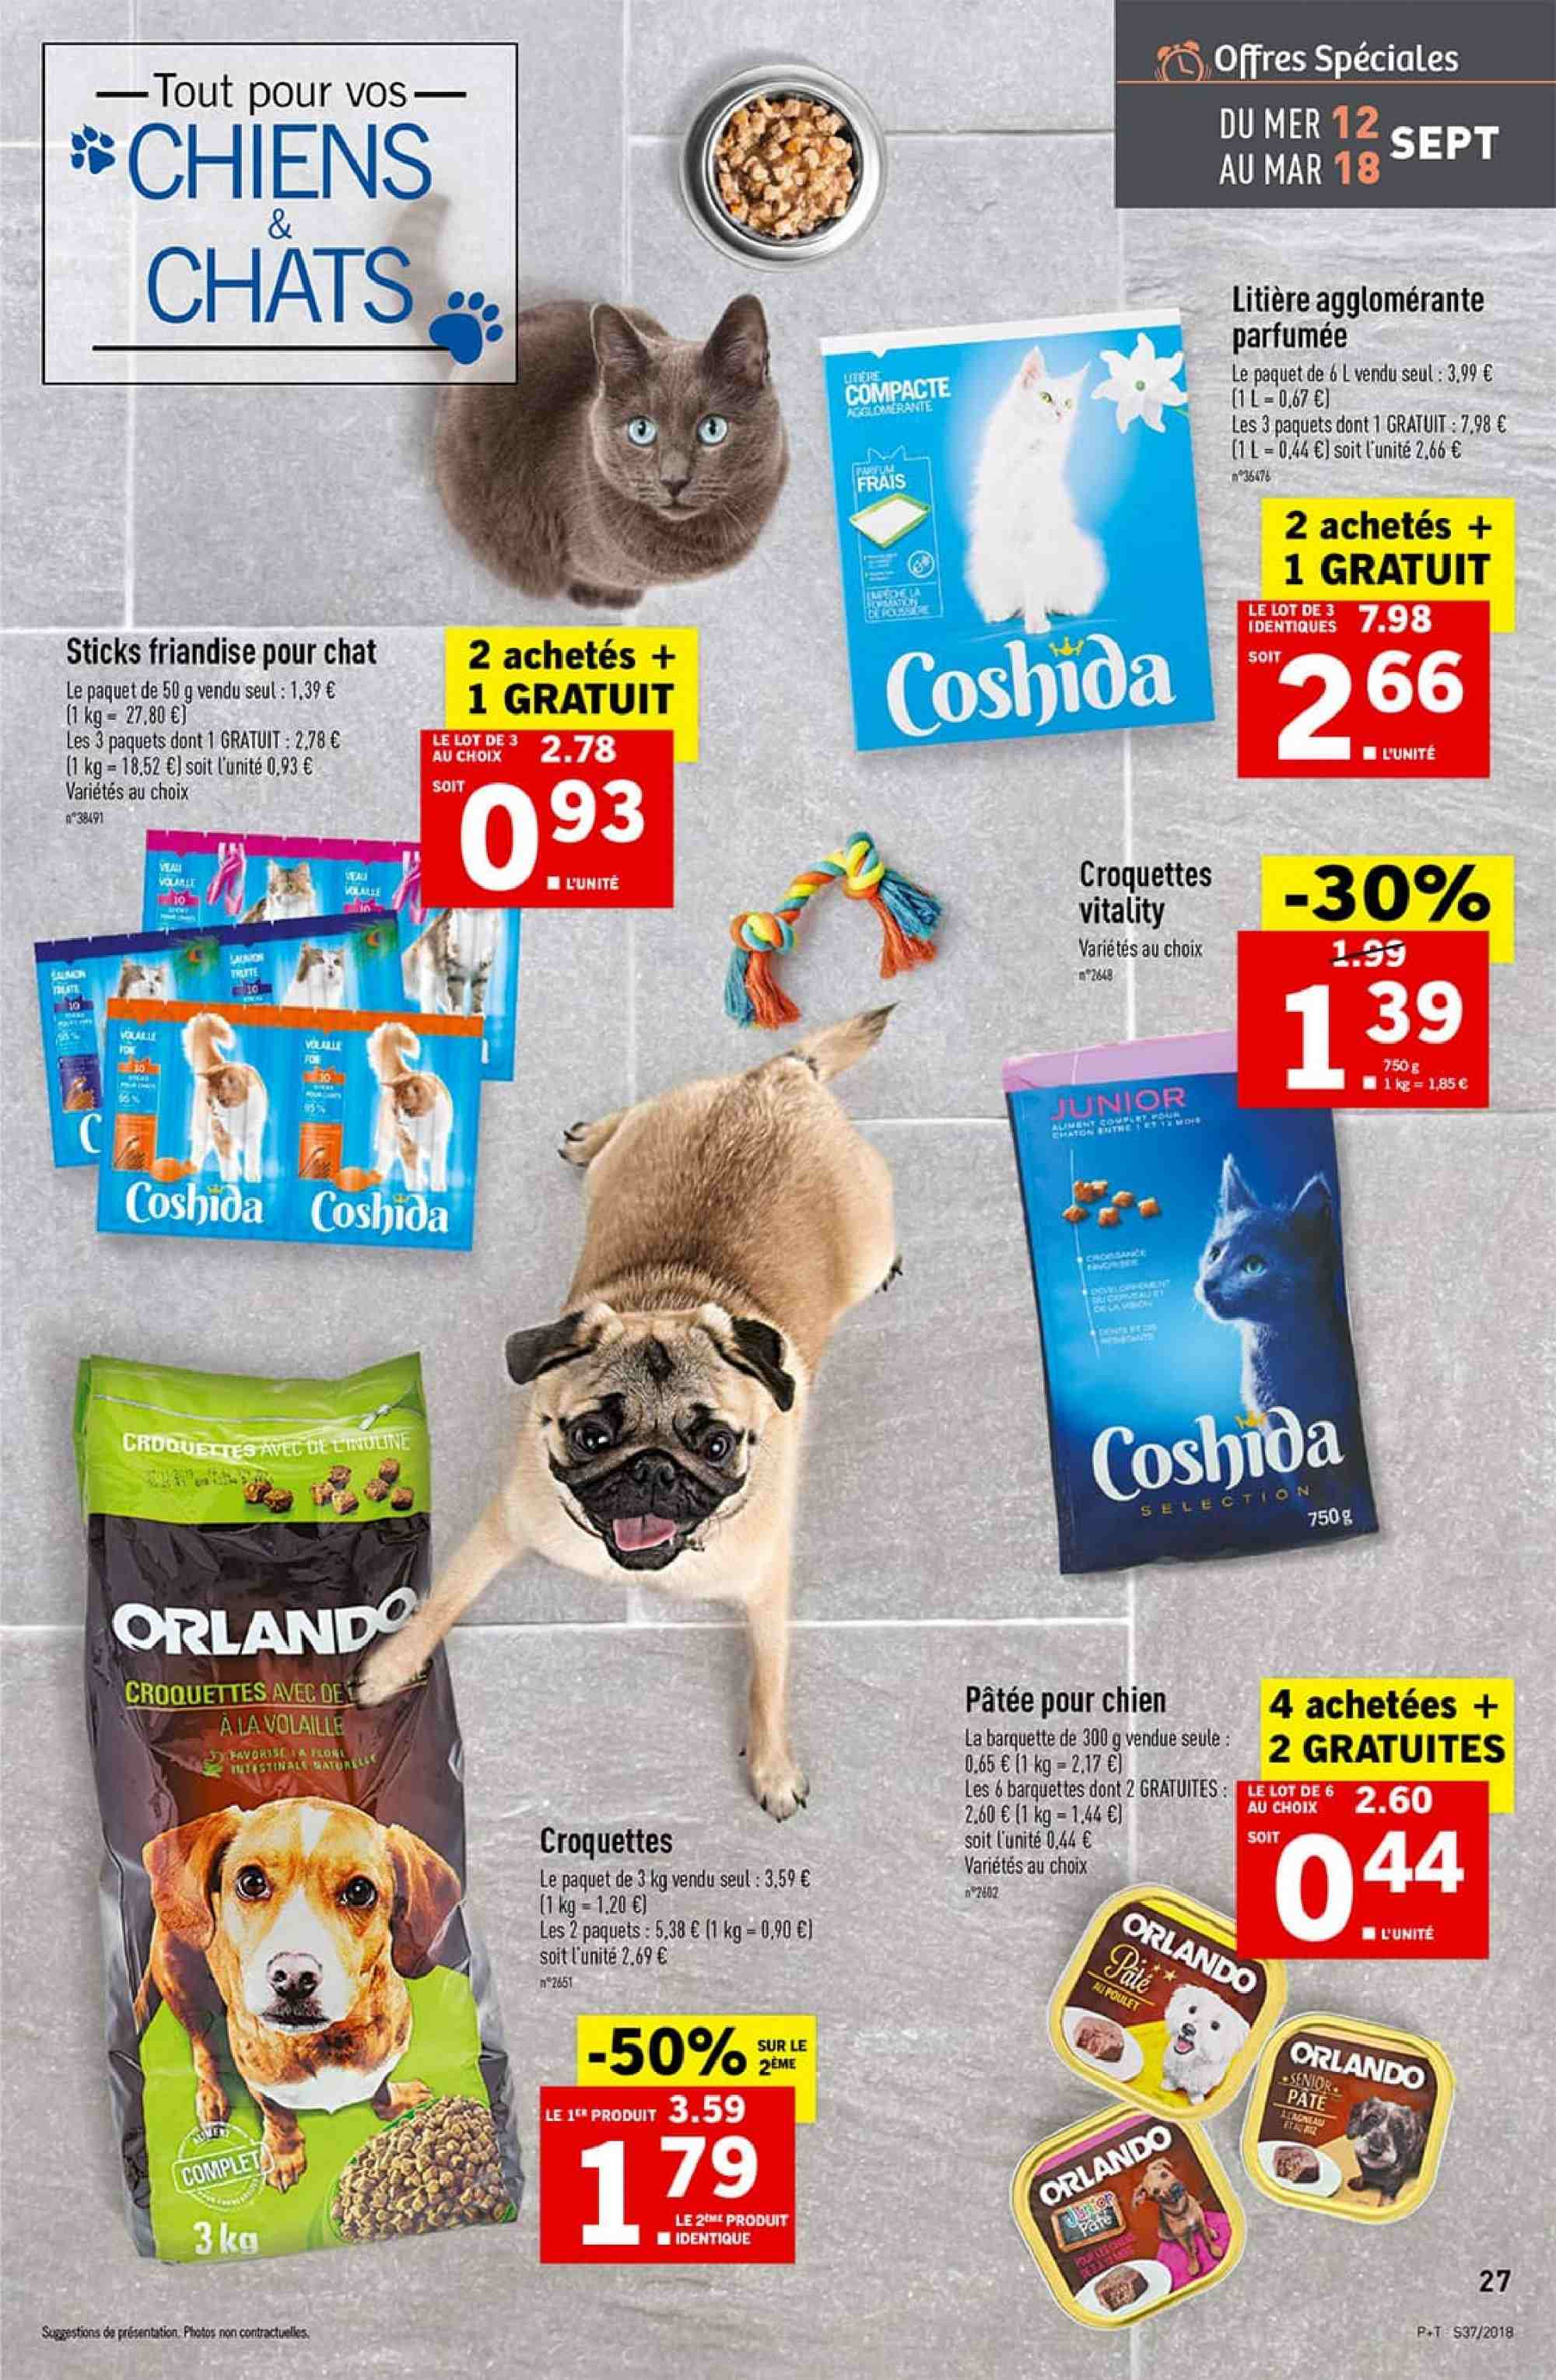 Catalogue Lidl - 12.09.2018 - 18.09.2018. Page 27.